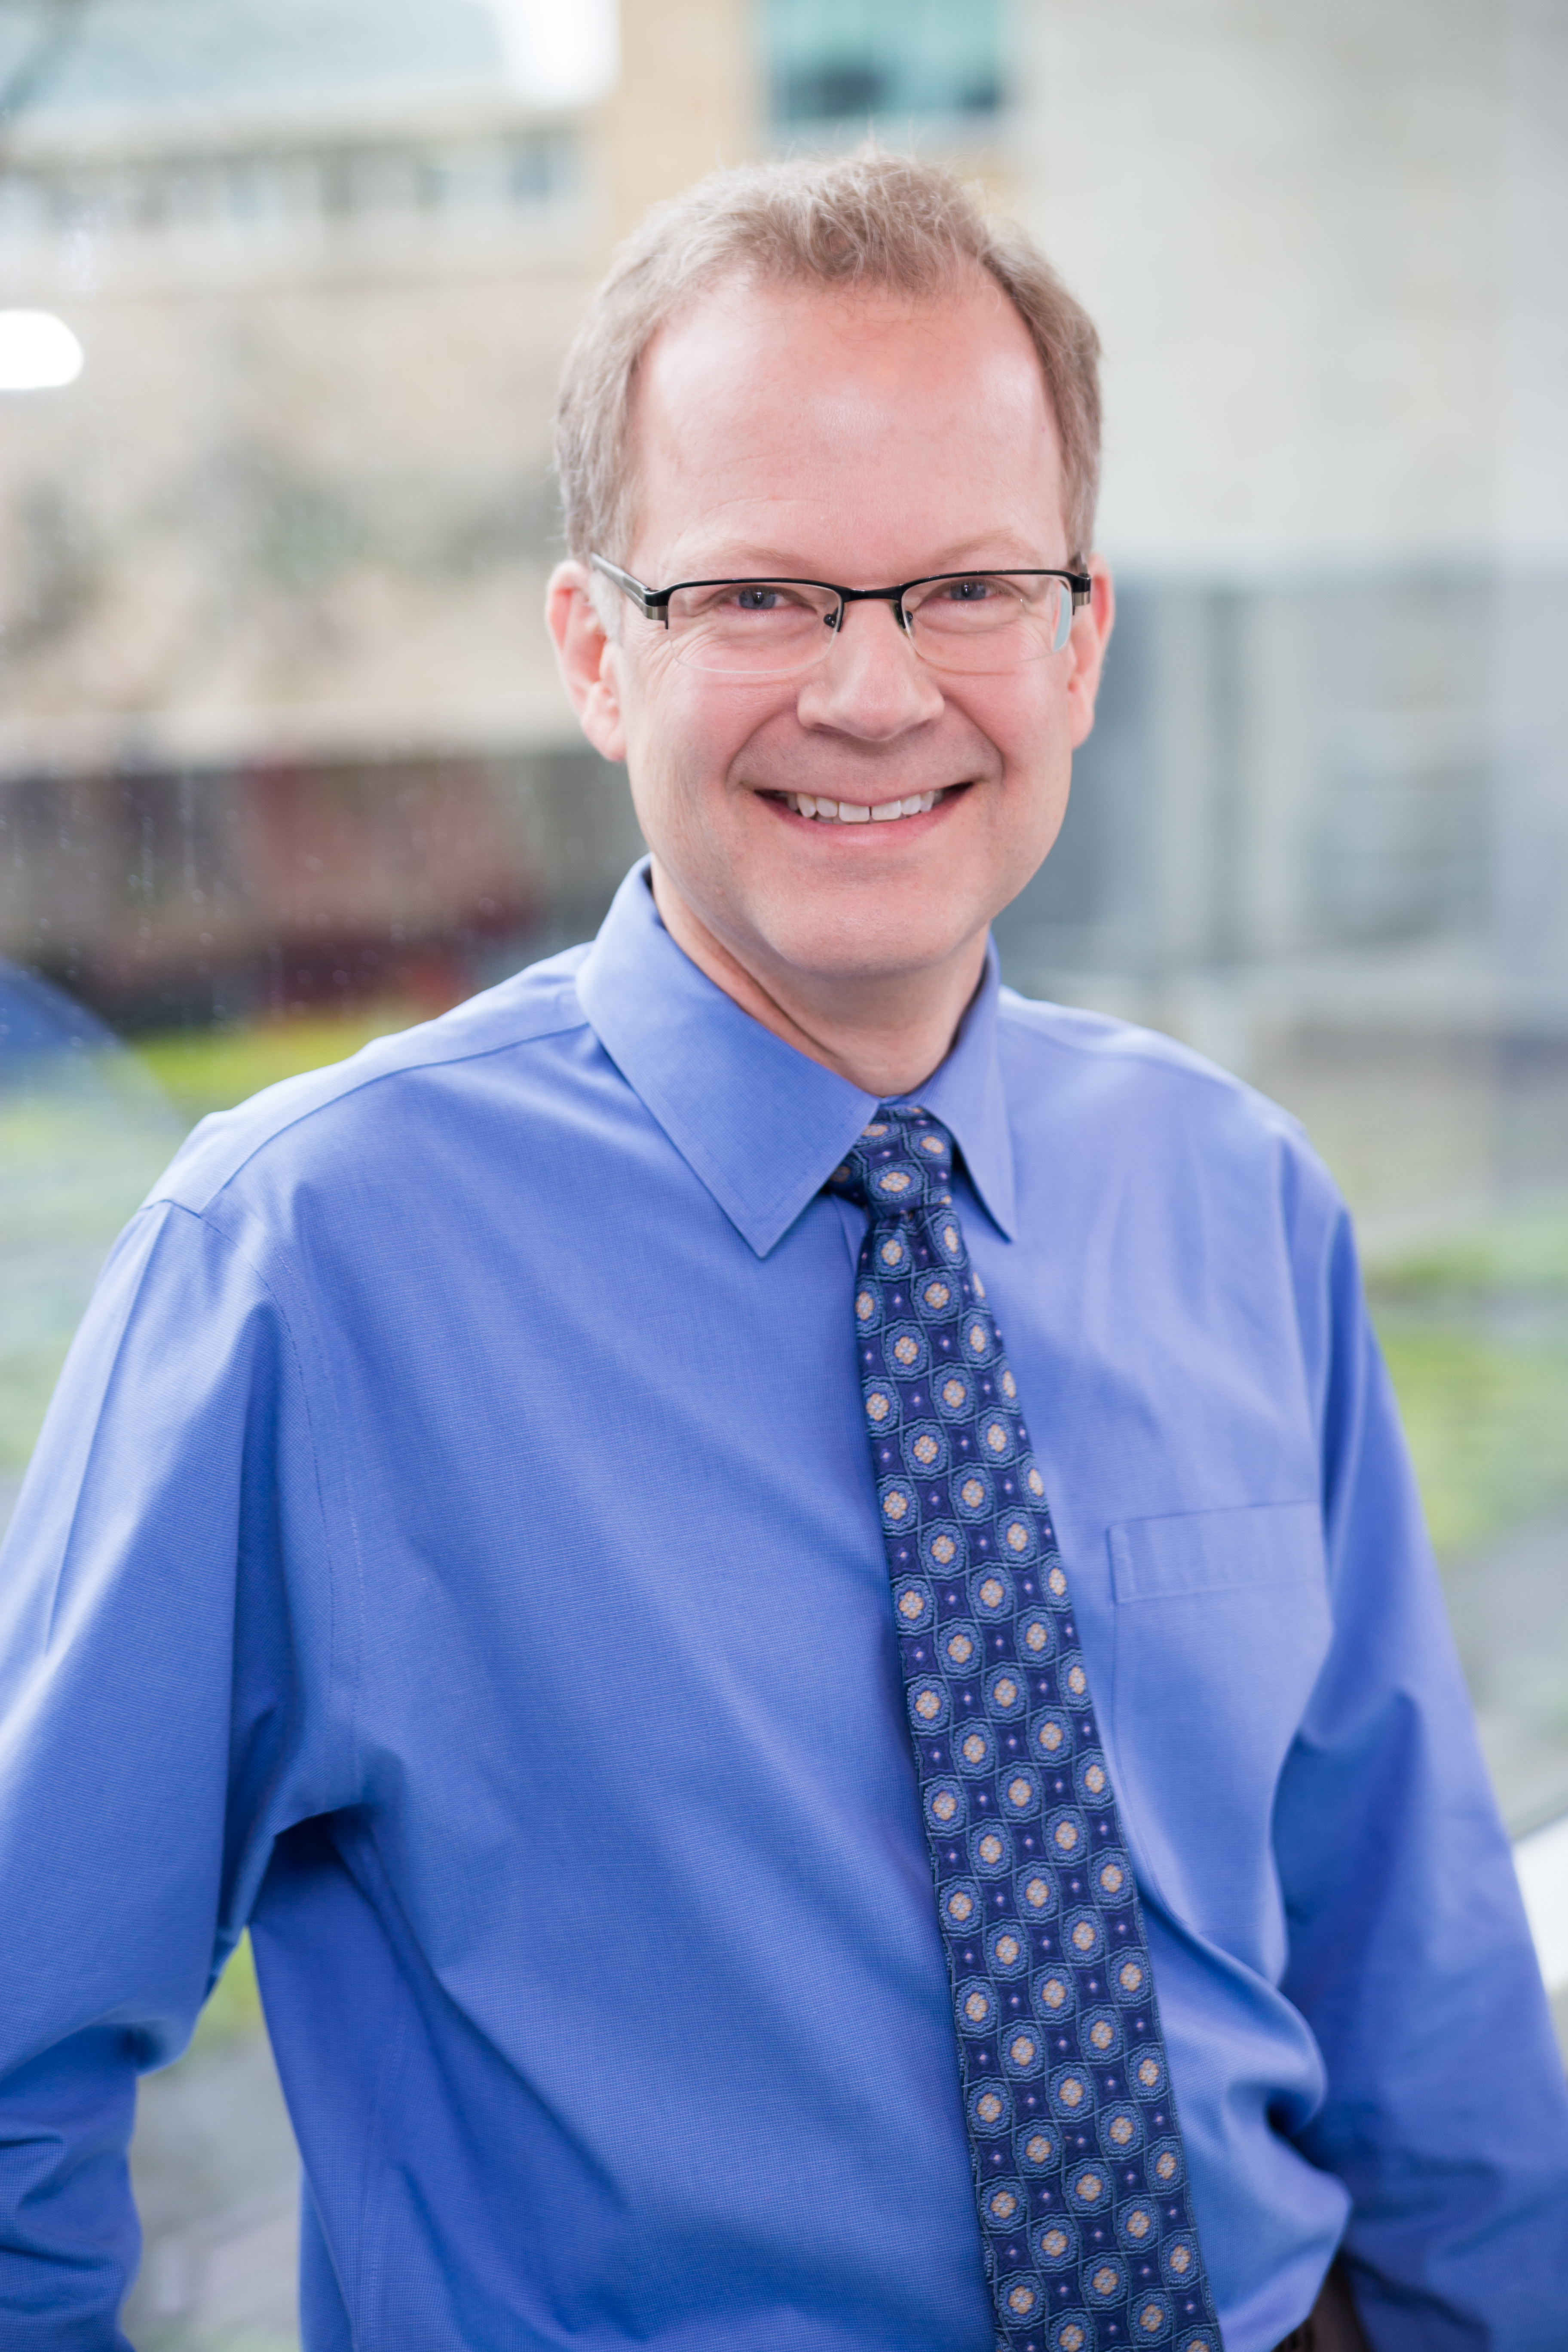 Dr. David Spencer is the director of the OHSU Comprehensive Epilepsy Center.